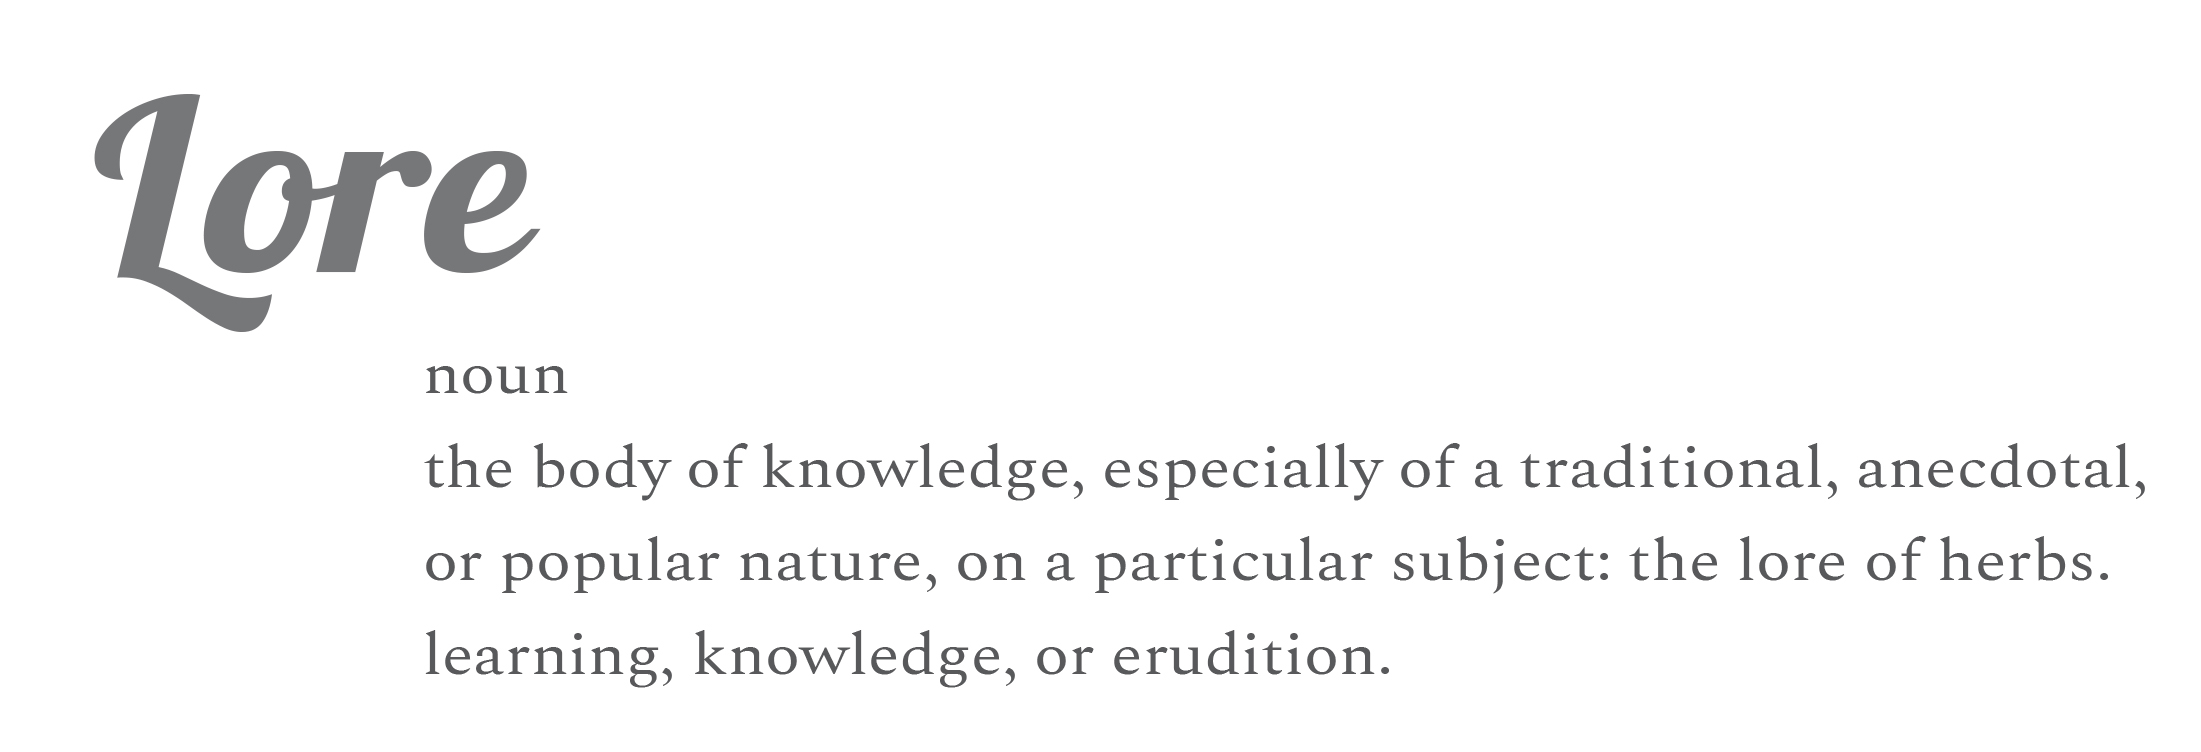 "Definition of ""Lore"": the body of knowledge, especial of a traditional, anecdotal, or popular nature, on a particular subject: the lore of herbs. Learning, knowledge of erudition."